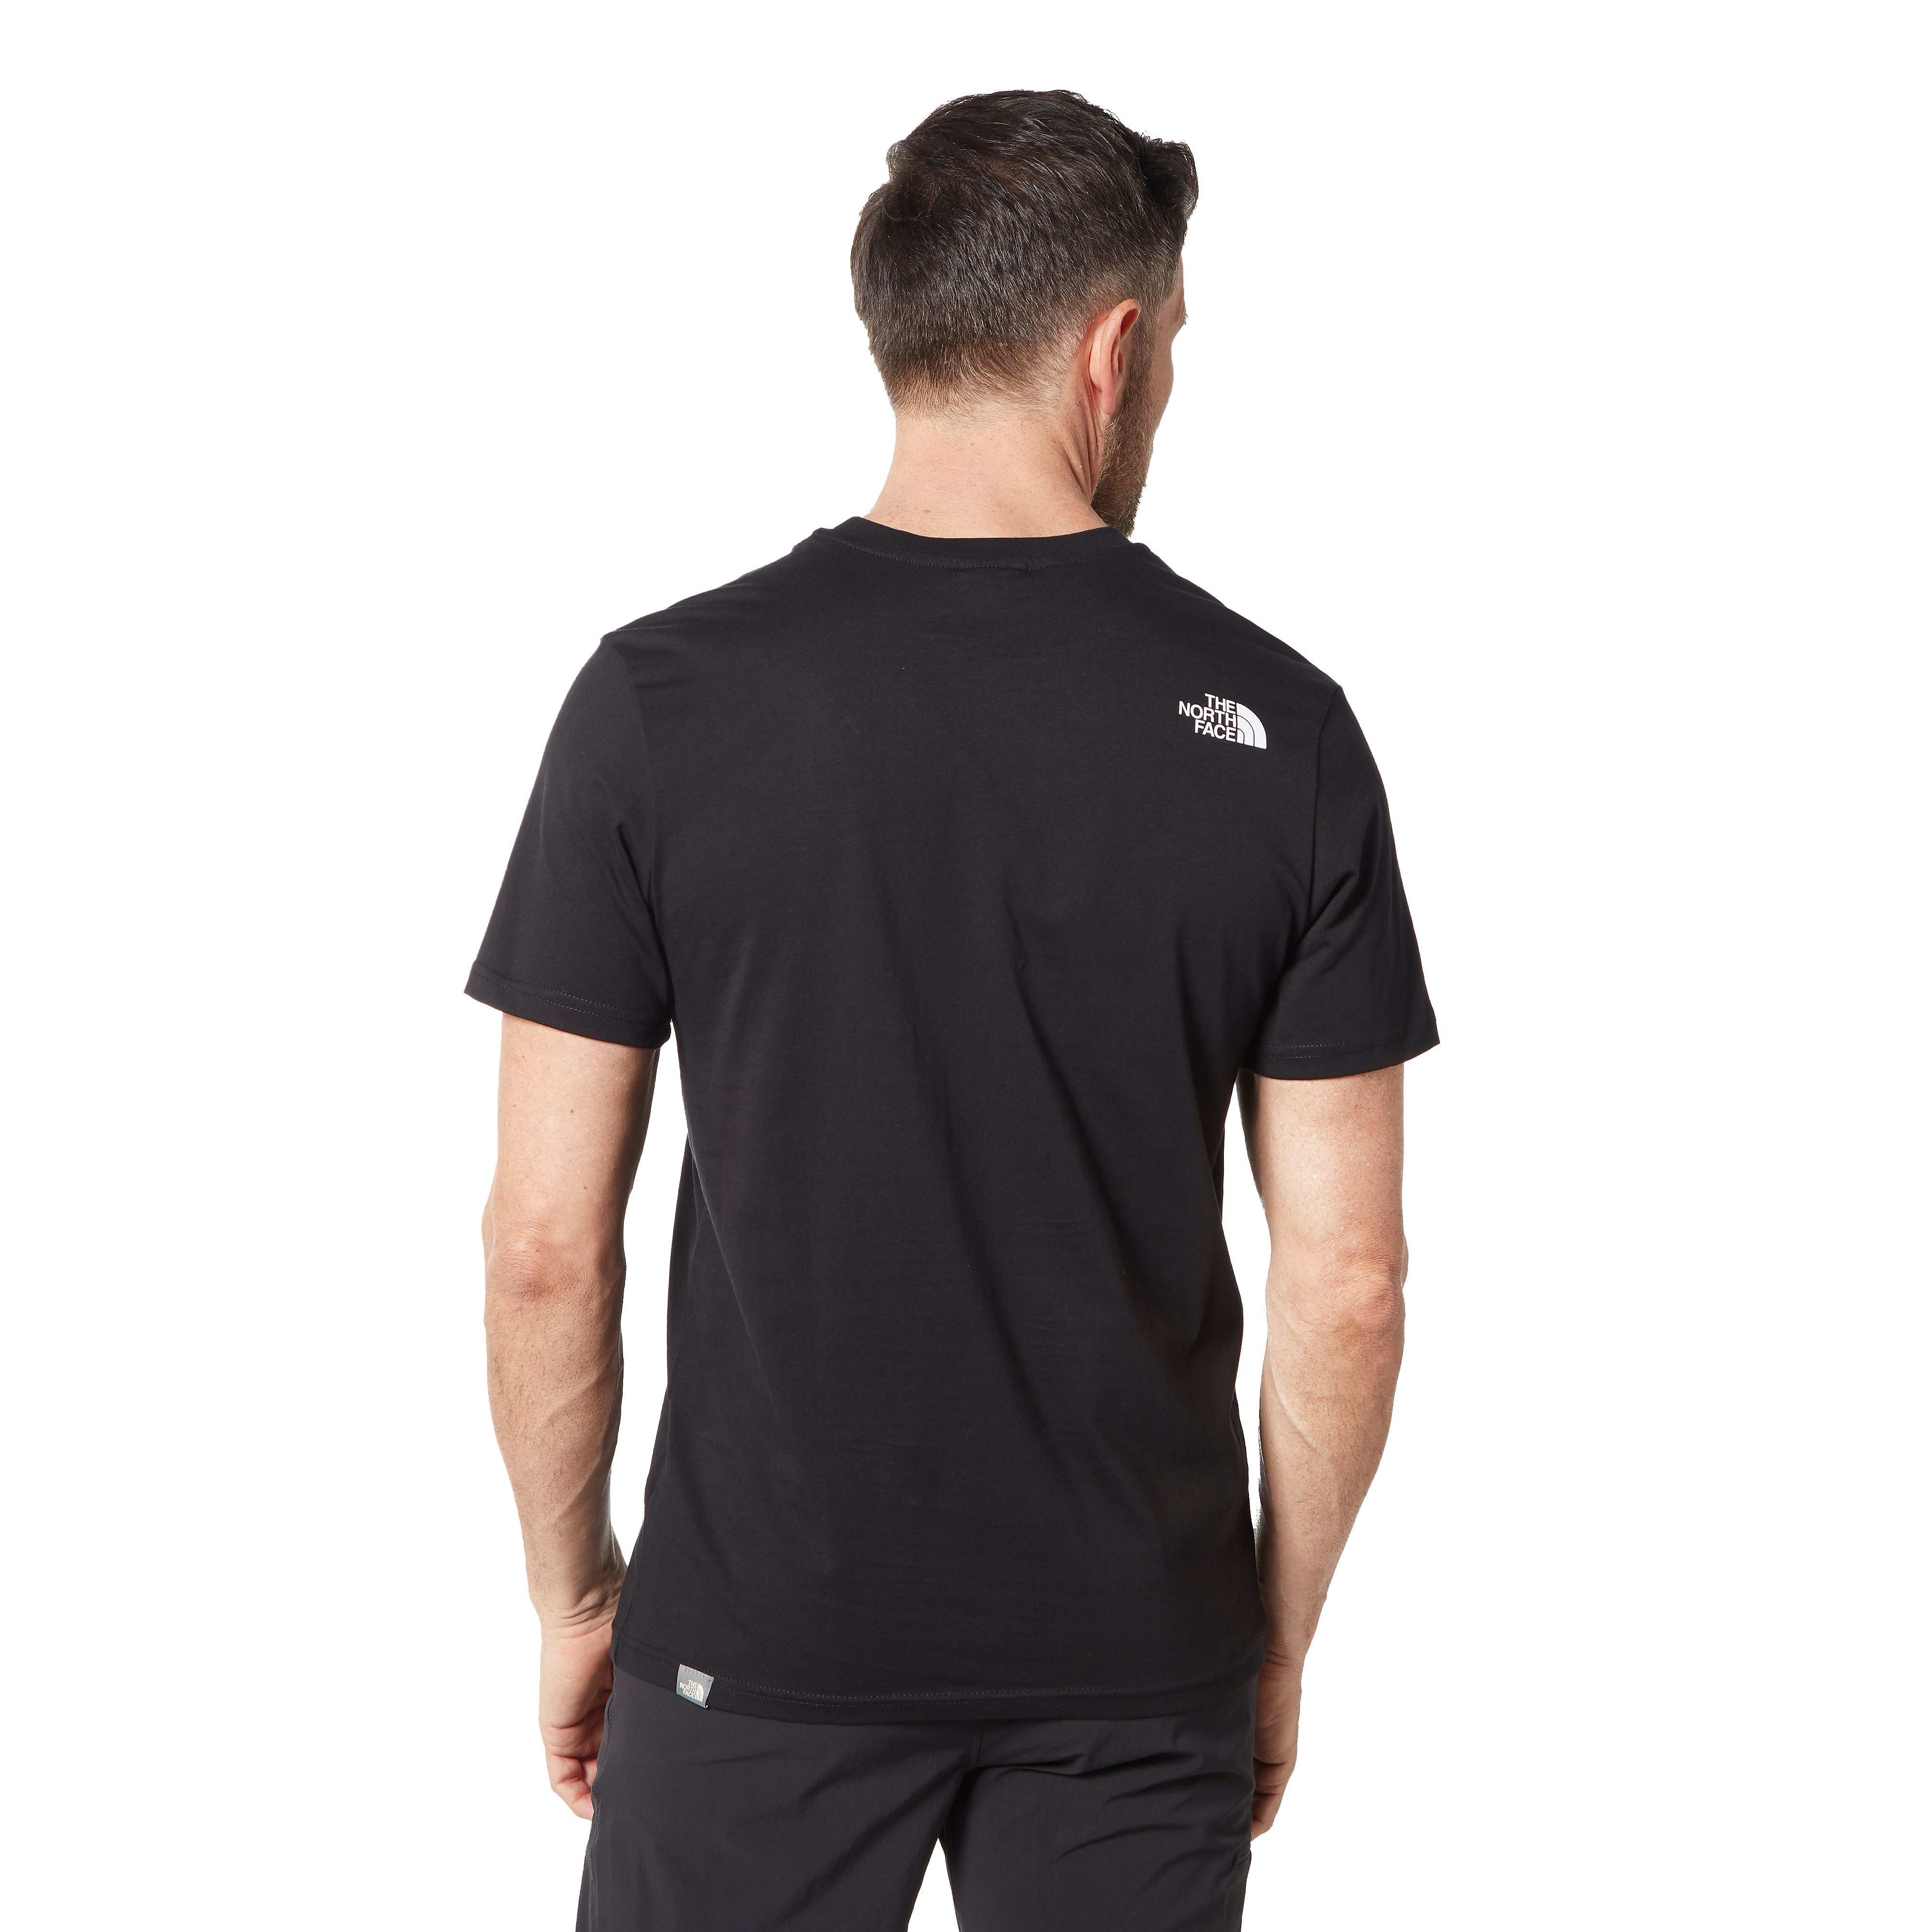 The North Face Men's Printed T-shirt